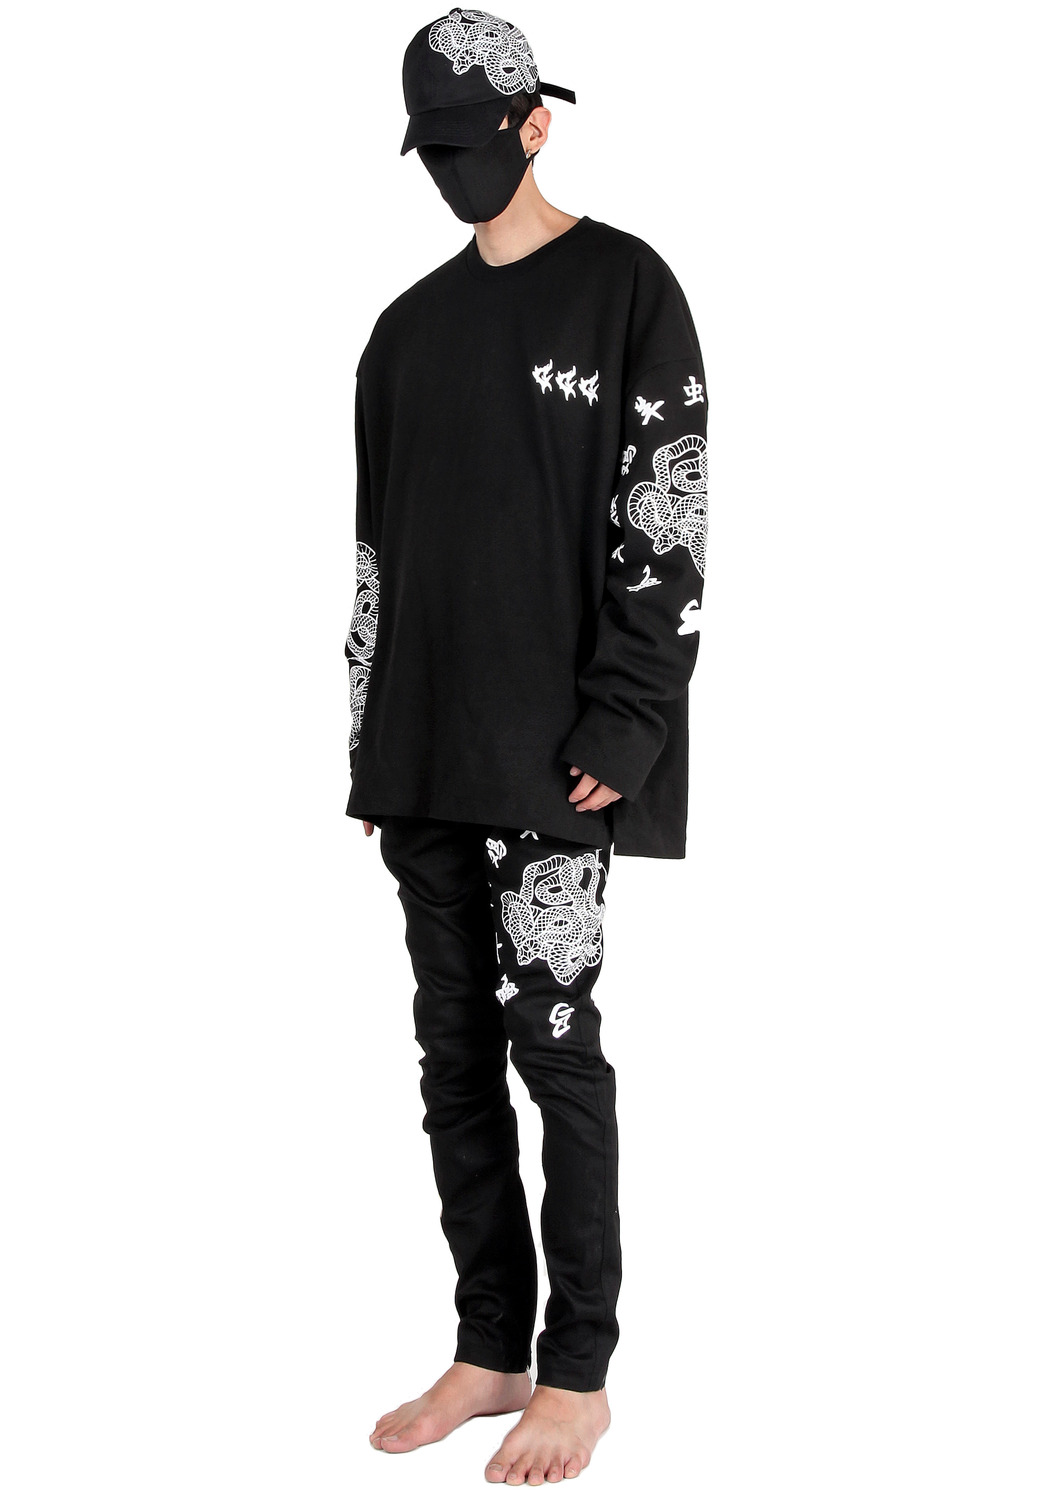 SNAKE ARM TATTO LETTERING LONG SLEEVE T-SHIRTS